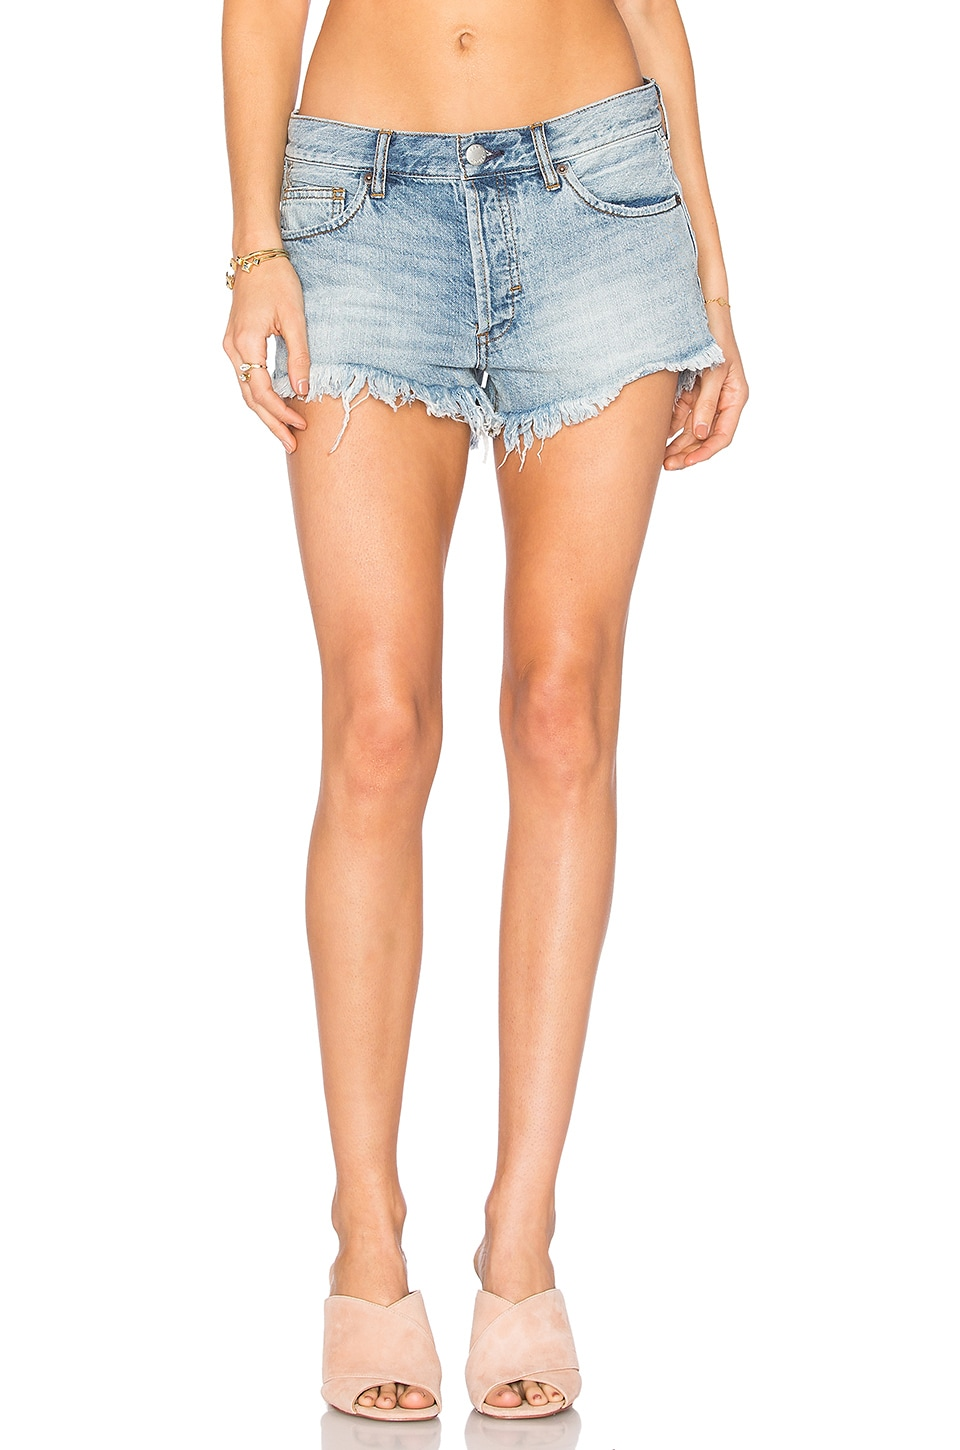 Free People Soft & Relaxed Cut Off Shorts in Light Denim | REVOLVE